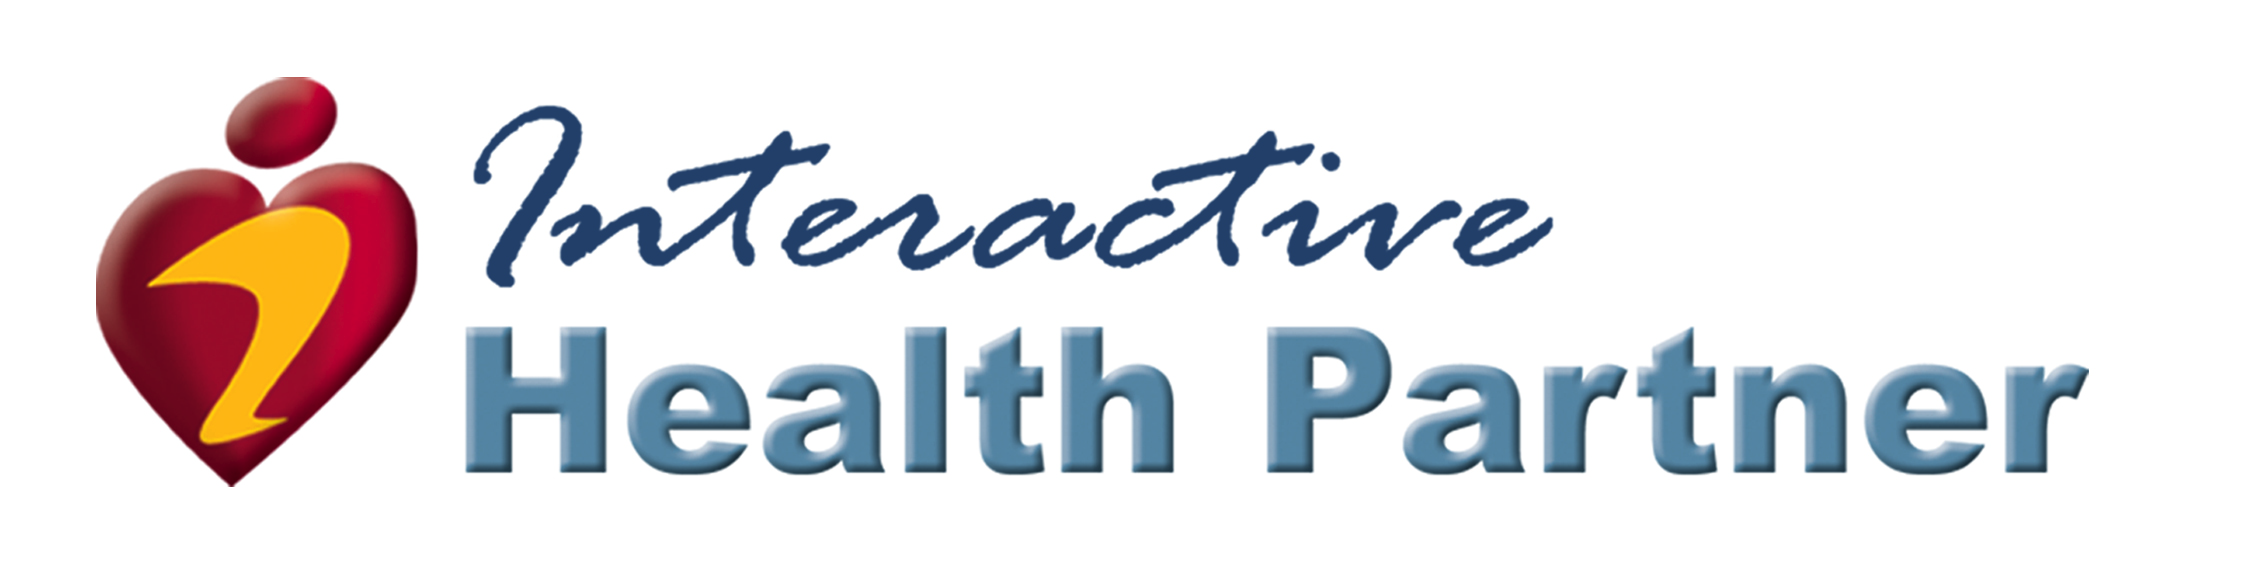 The Interactive Health Partner Wellness Program addresses fall prevention with assessments and outcomes tracking in an easy to use, comprehensive online system. Website: www.interactivehealthpartner.